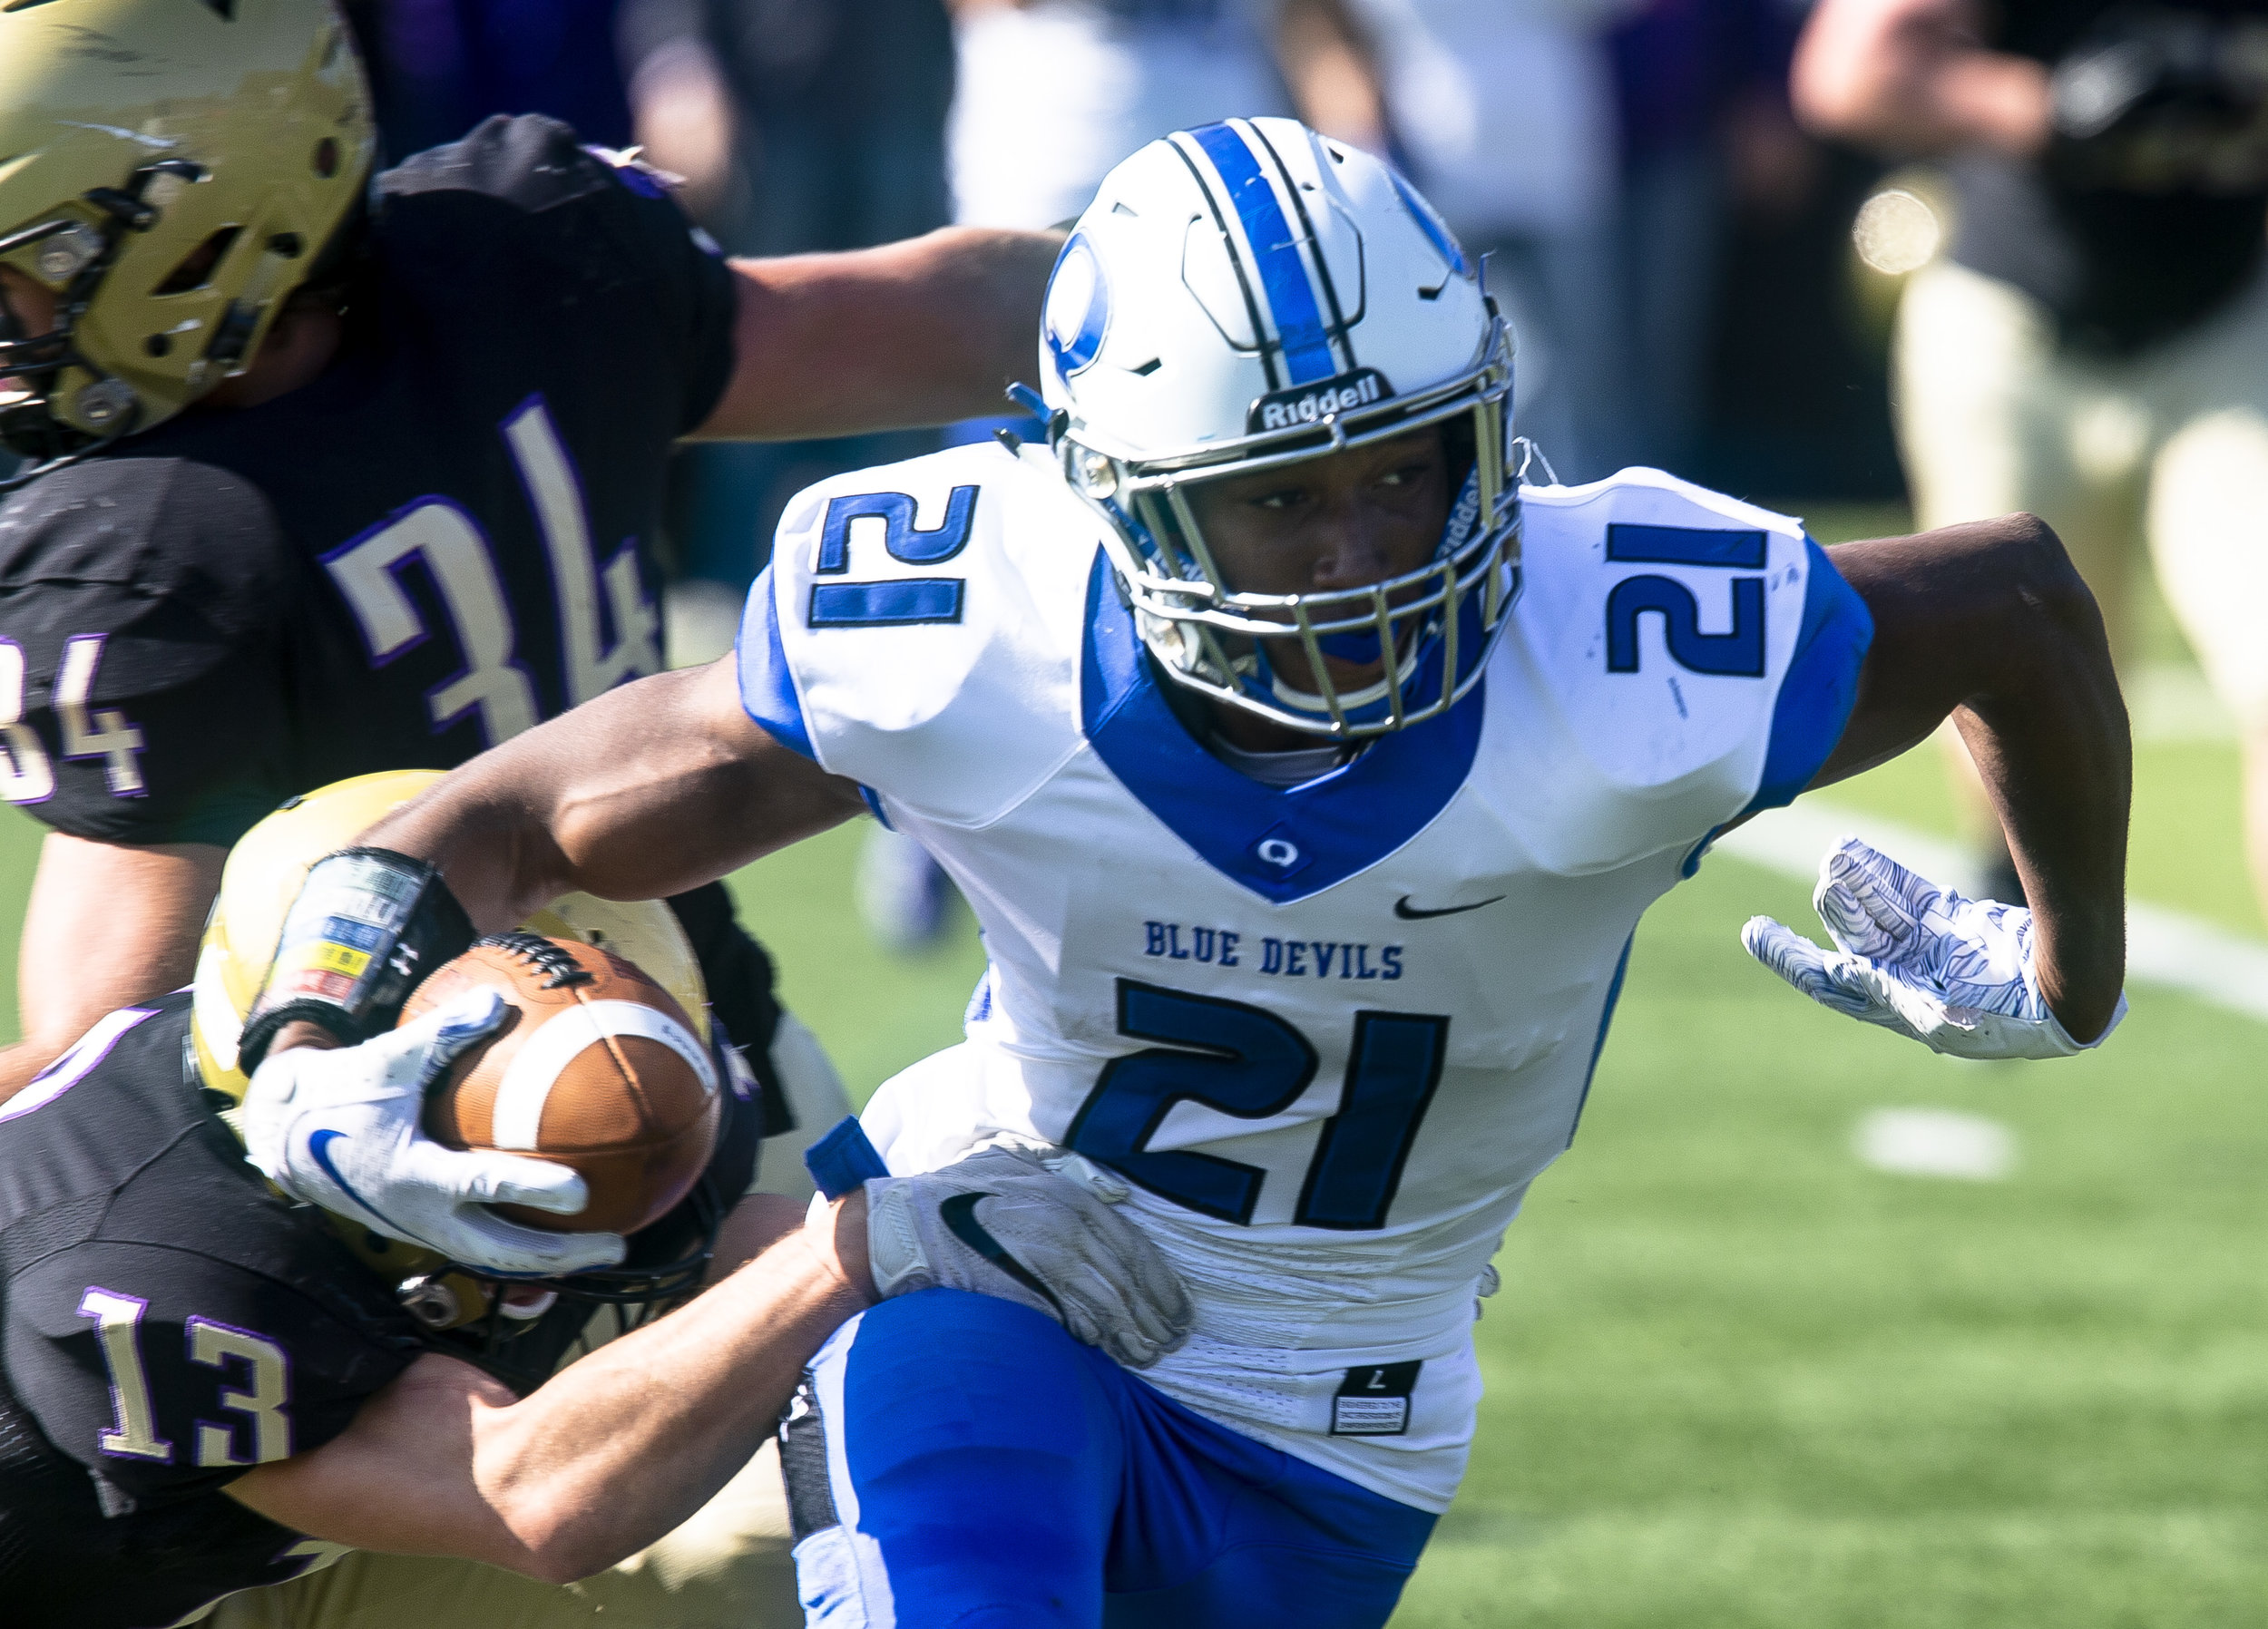 in a Class 6A playoff game Saturday, Oct. 27, 2018 at Ken Leonard Field in Springfield, Ill. [Rich Saal/The State Journal-Register]